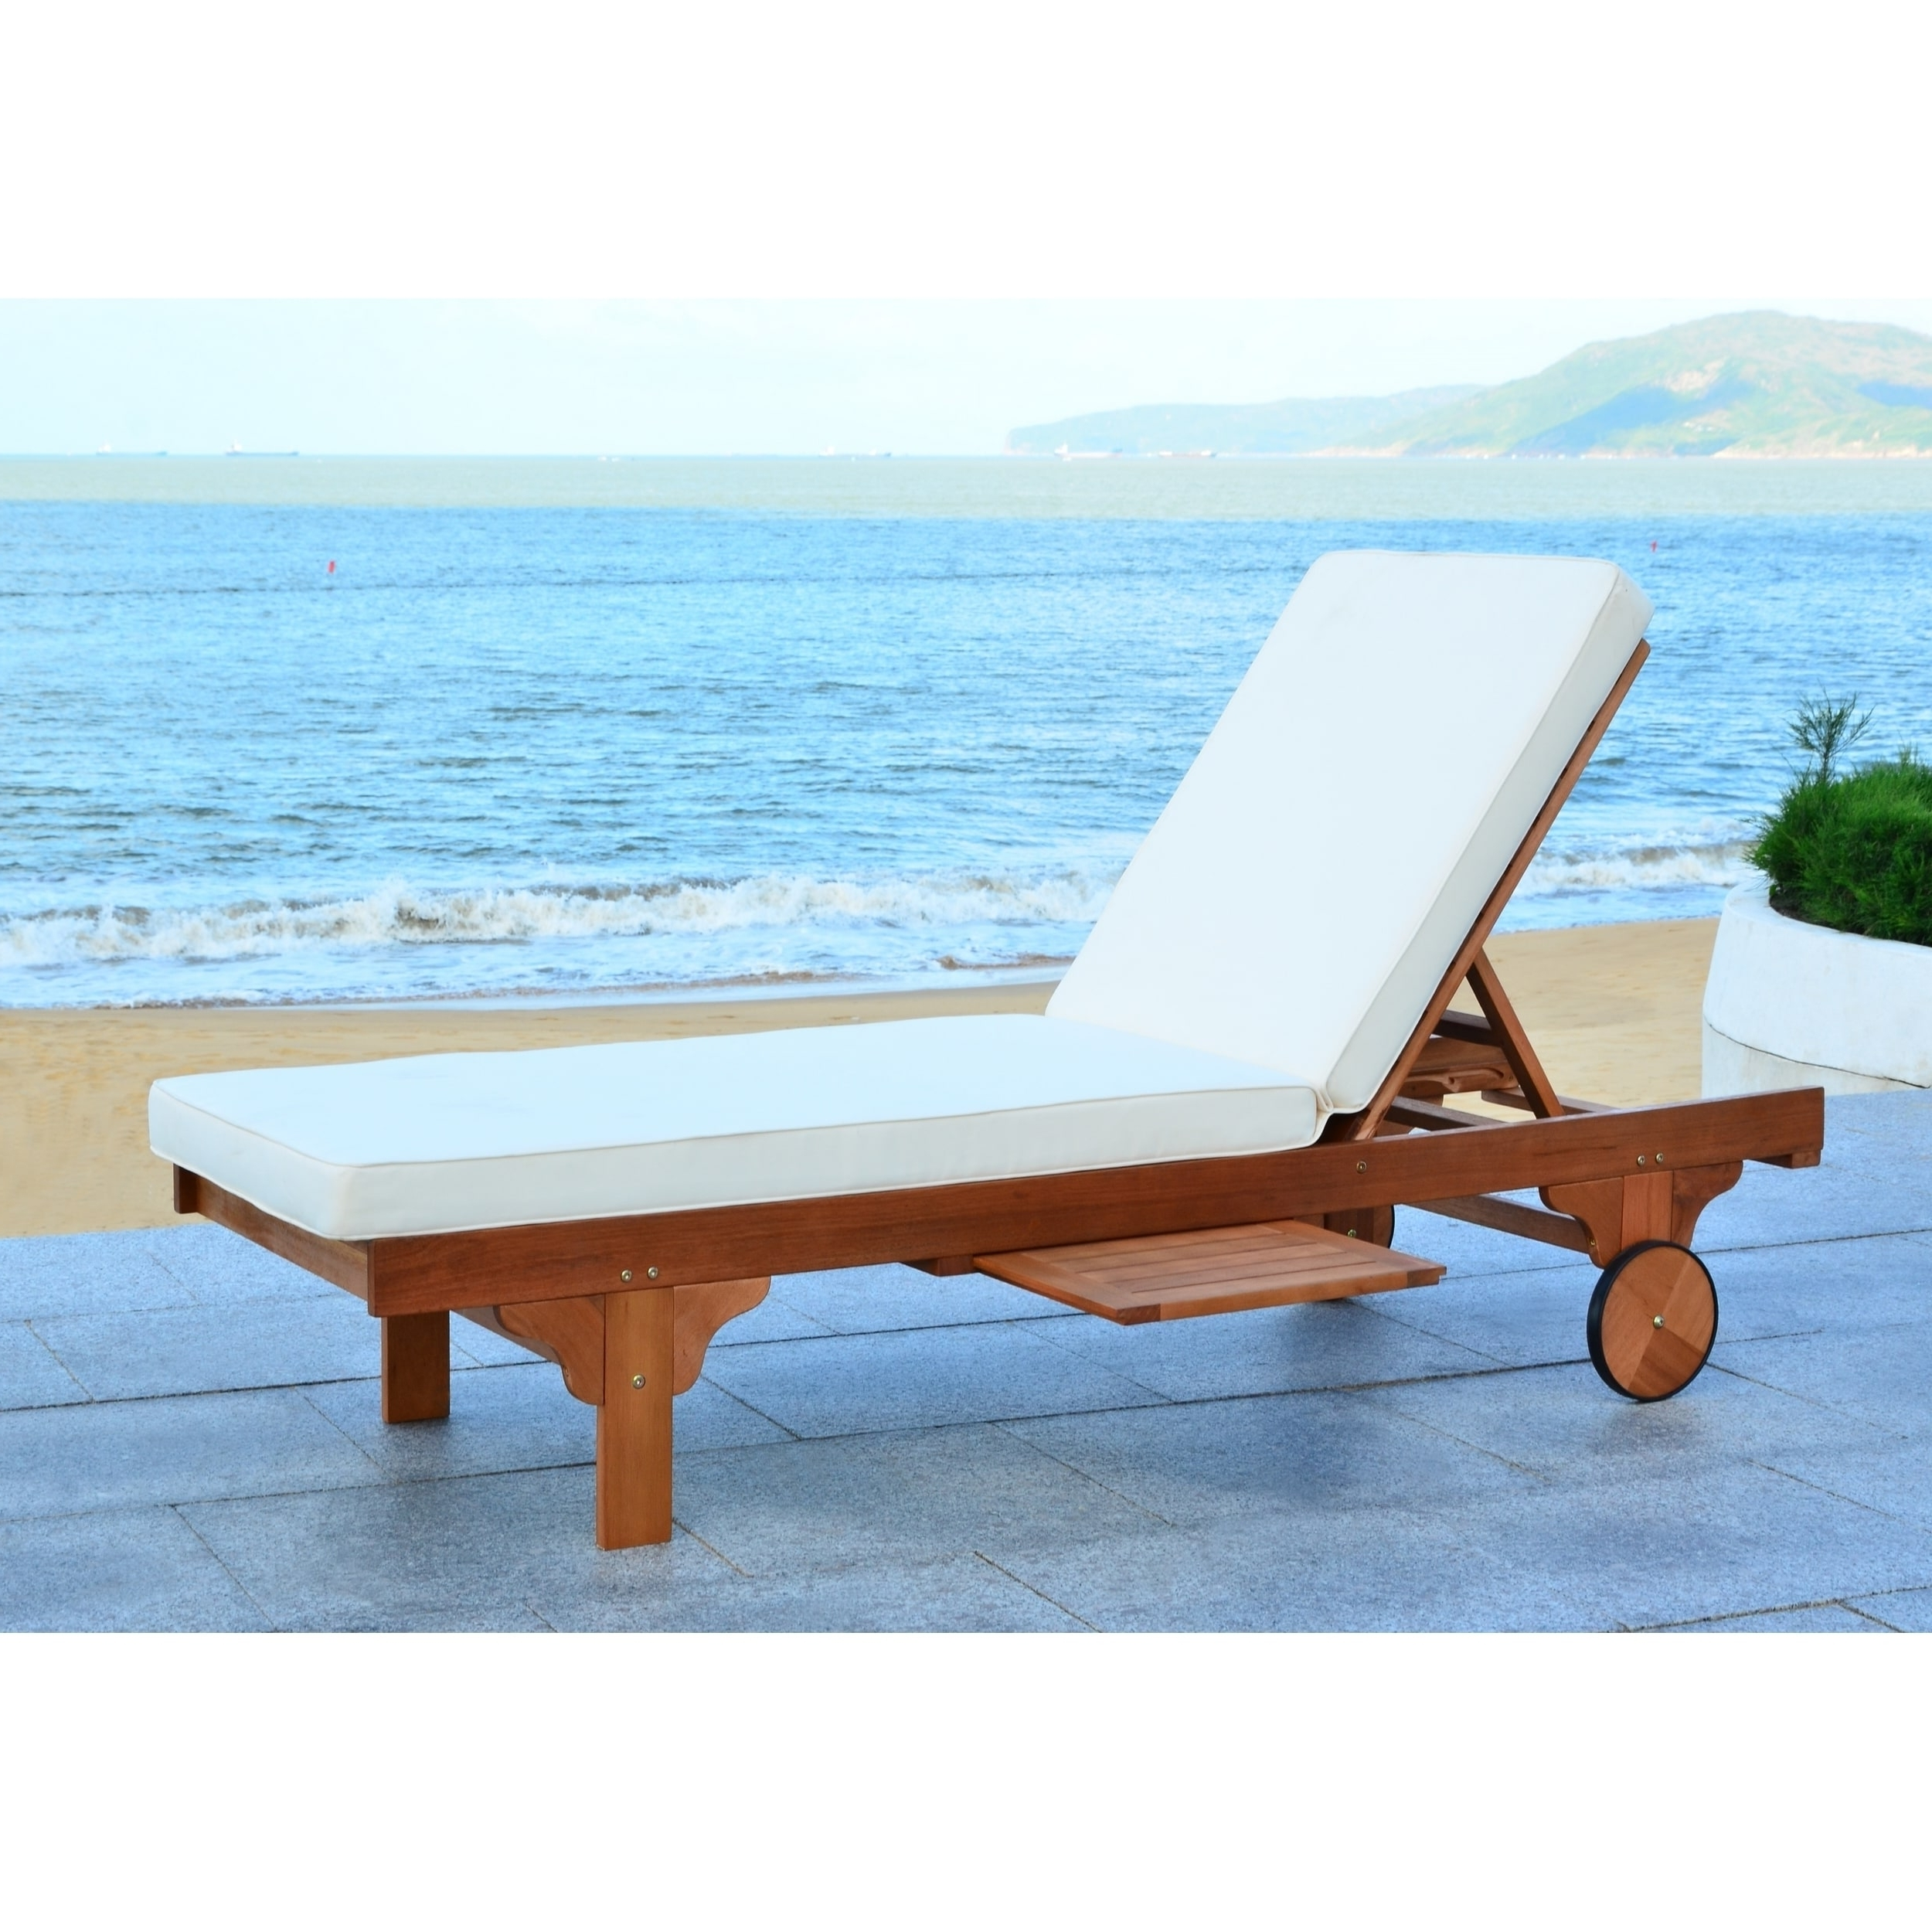 Safavieh Outdoor Living Newport Brown/ Beige Adjustable Chaise For Well Liked Newport Chaise Lounge Chairs (View 12 of 15)